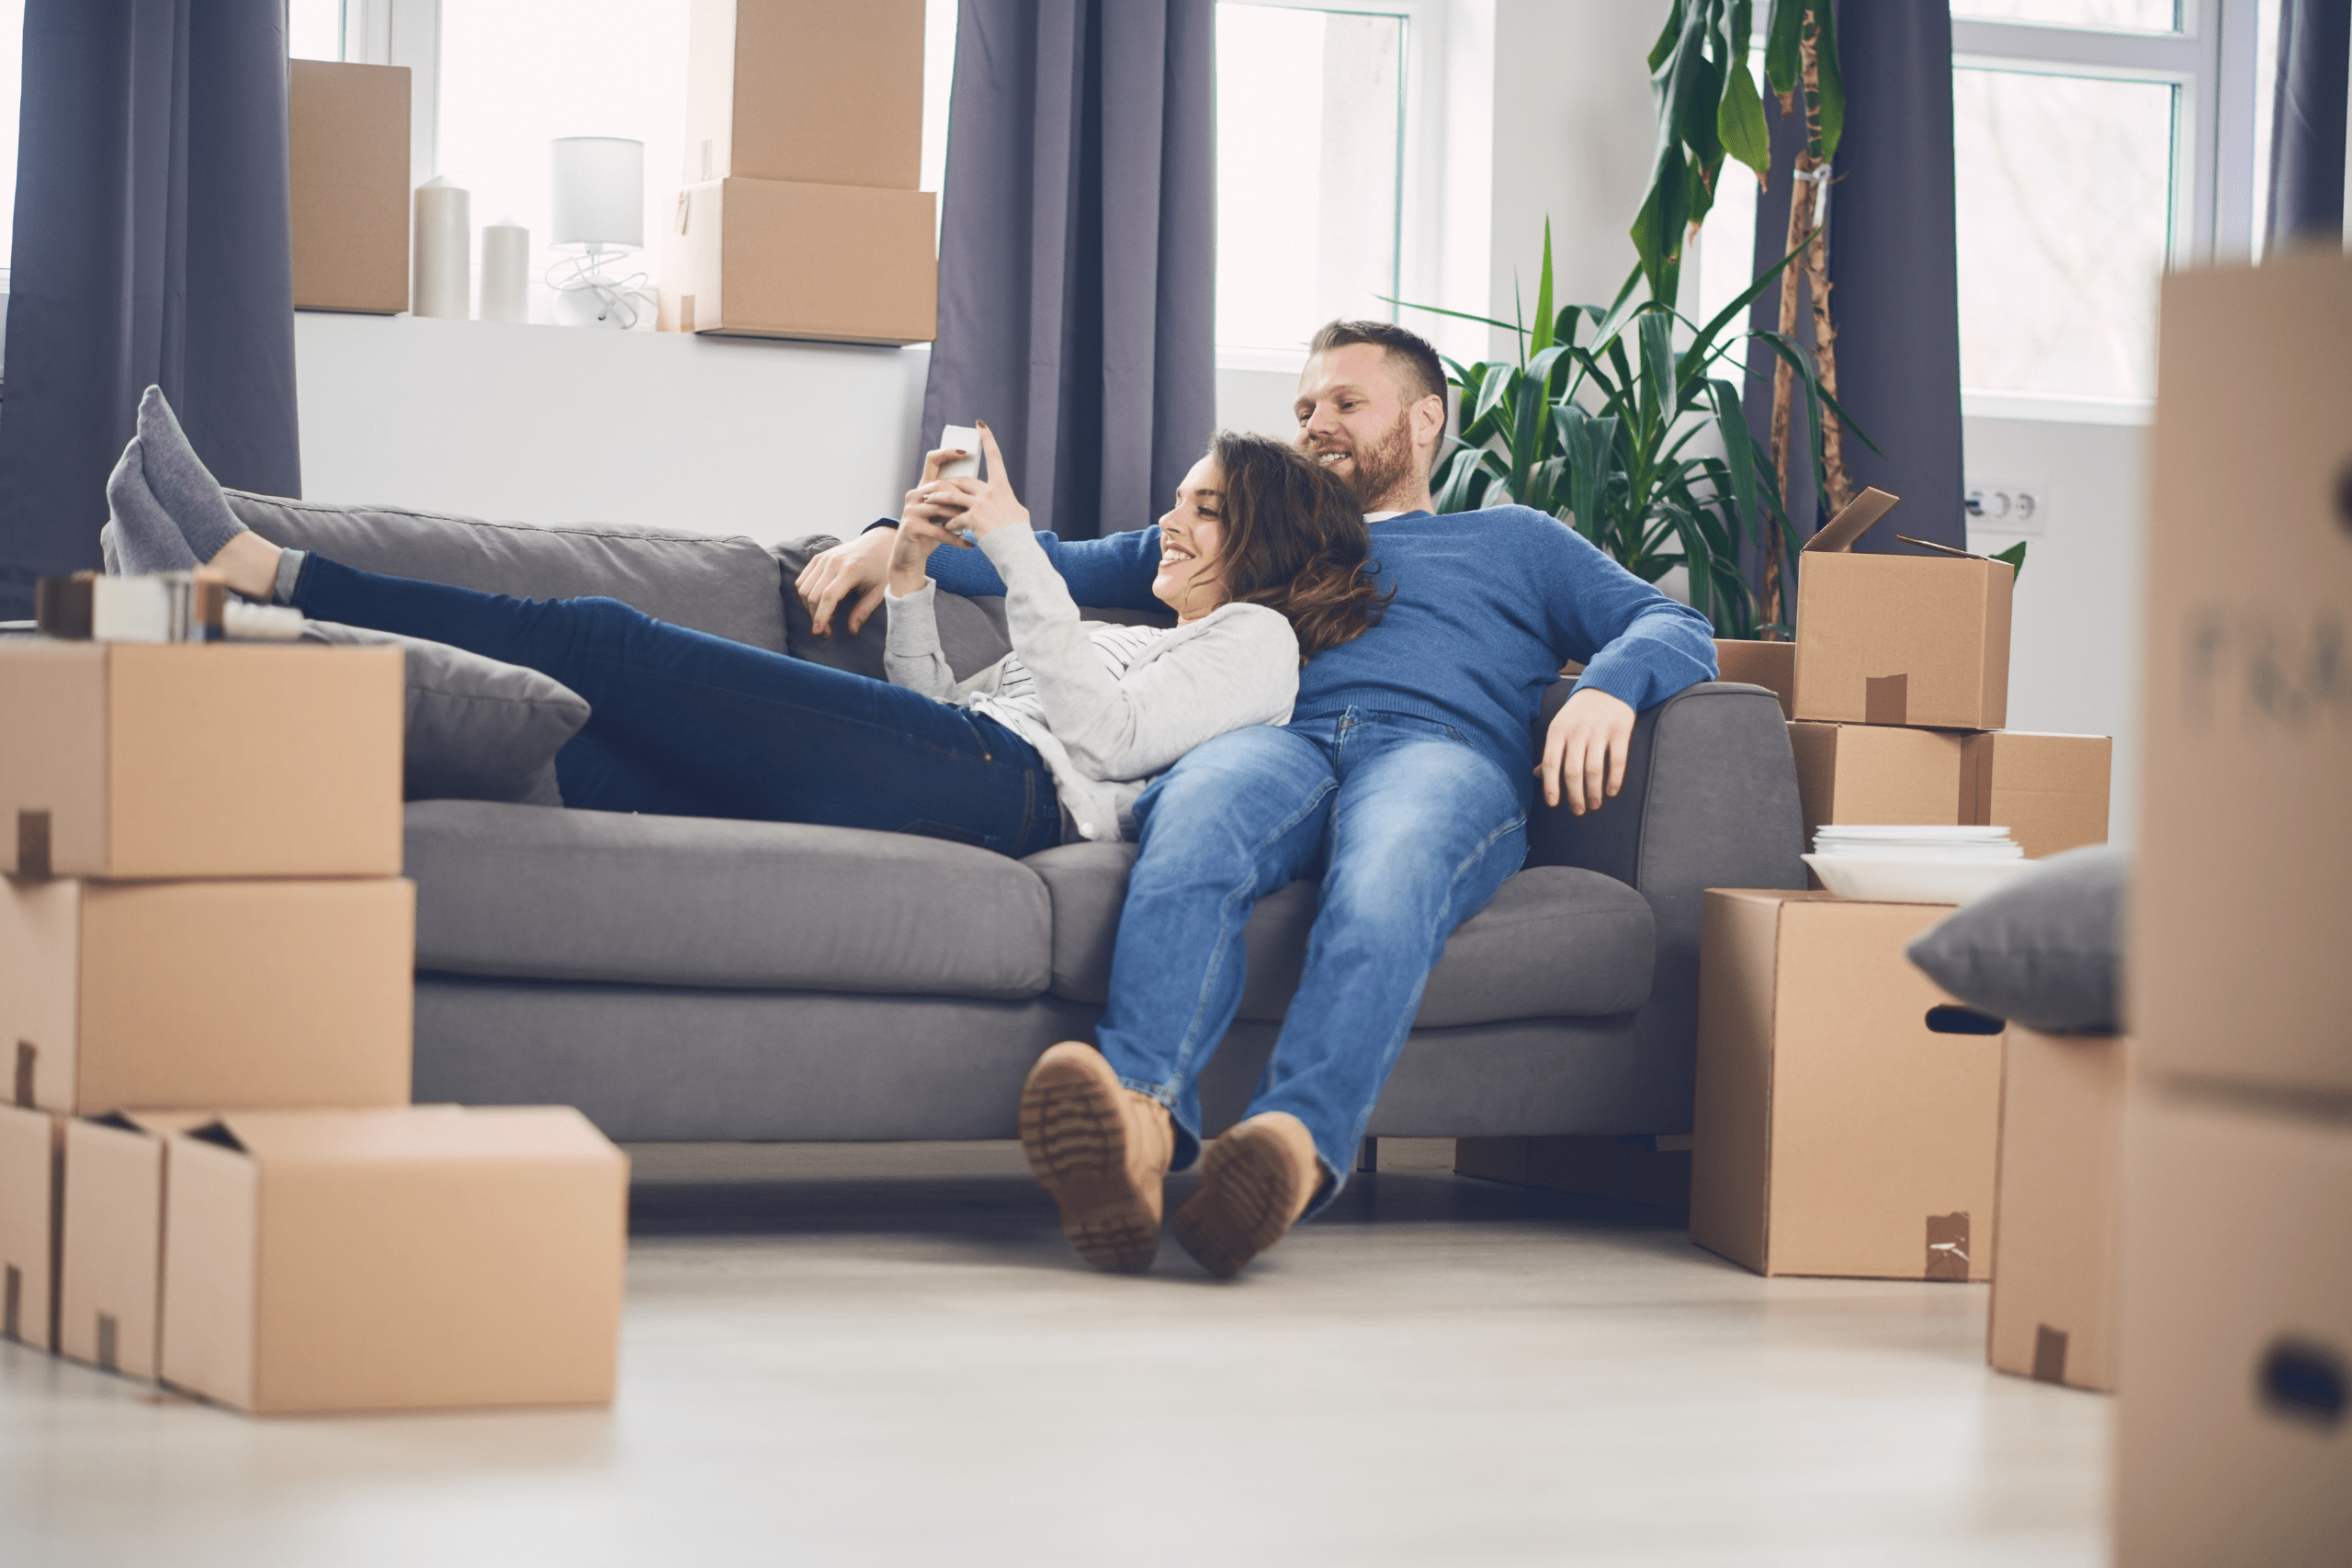 5 Things You Should Never Do Before You Apply for a Home Mortgage